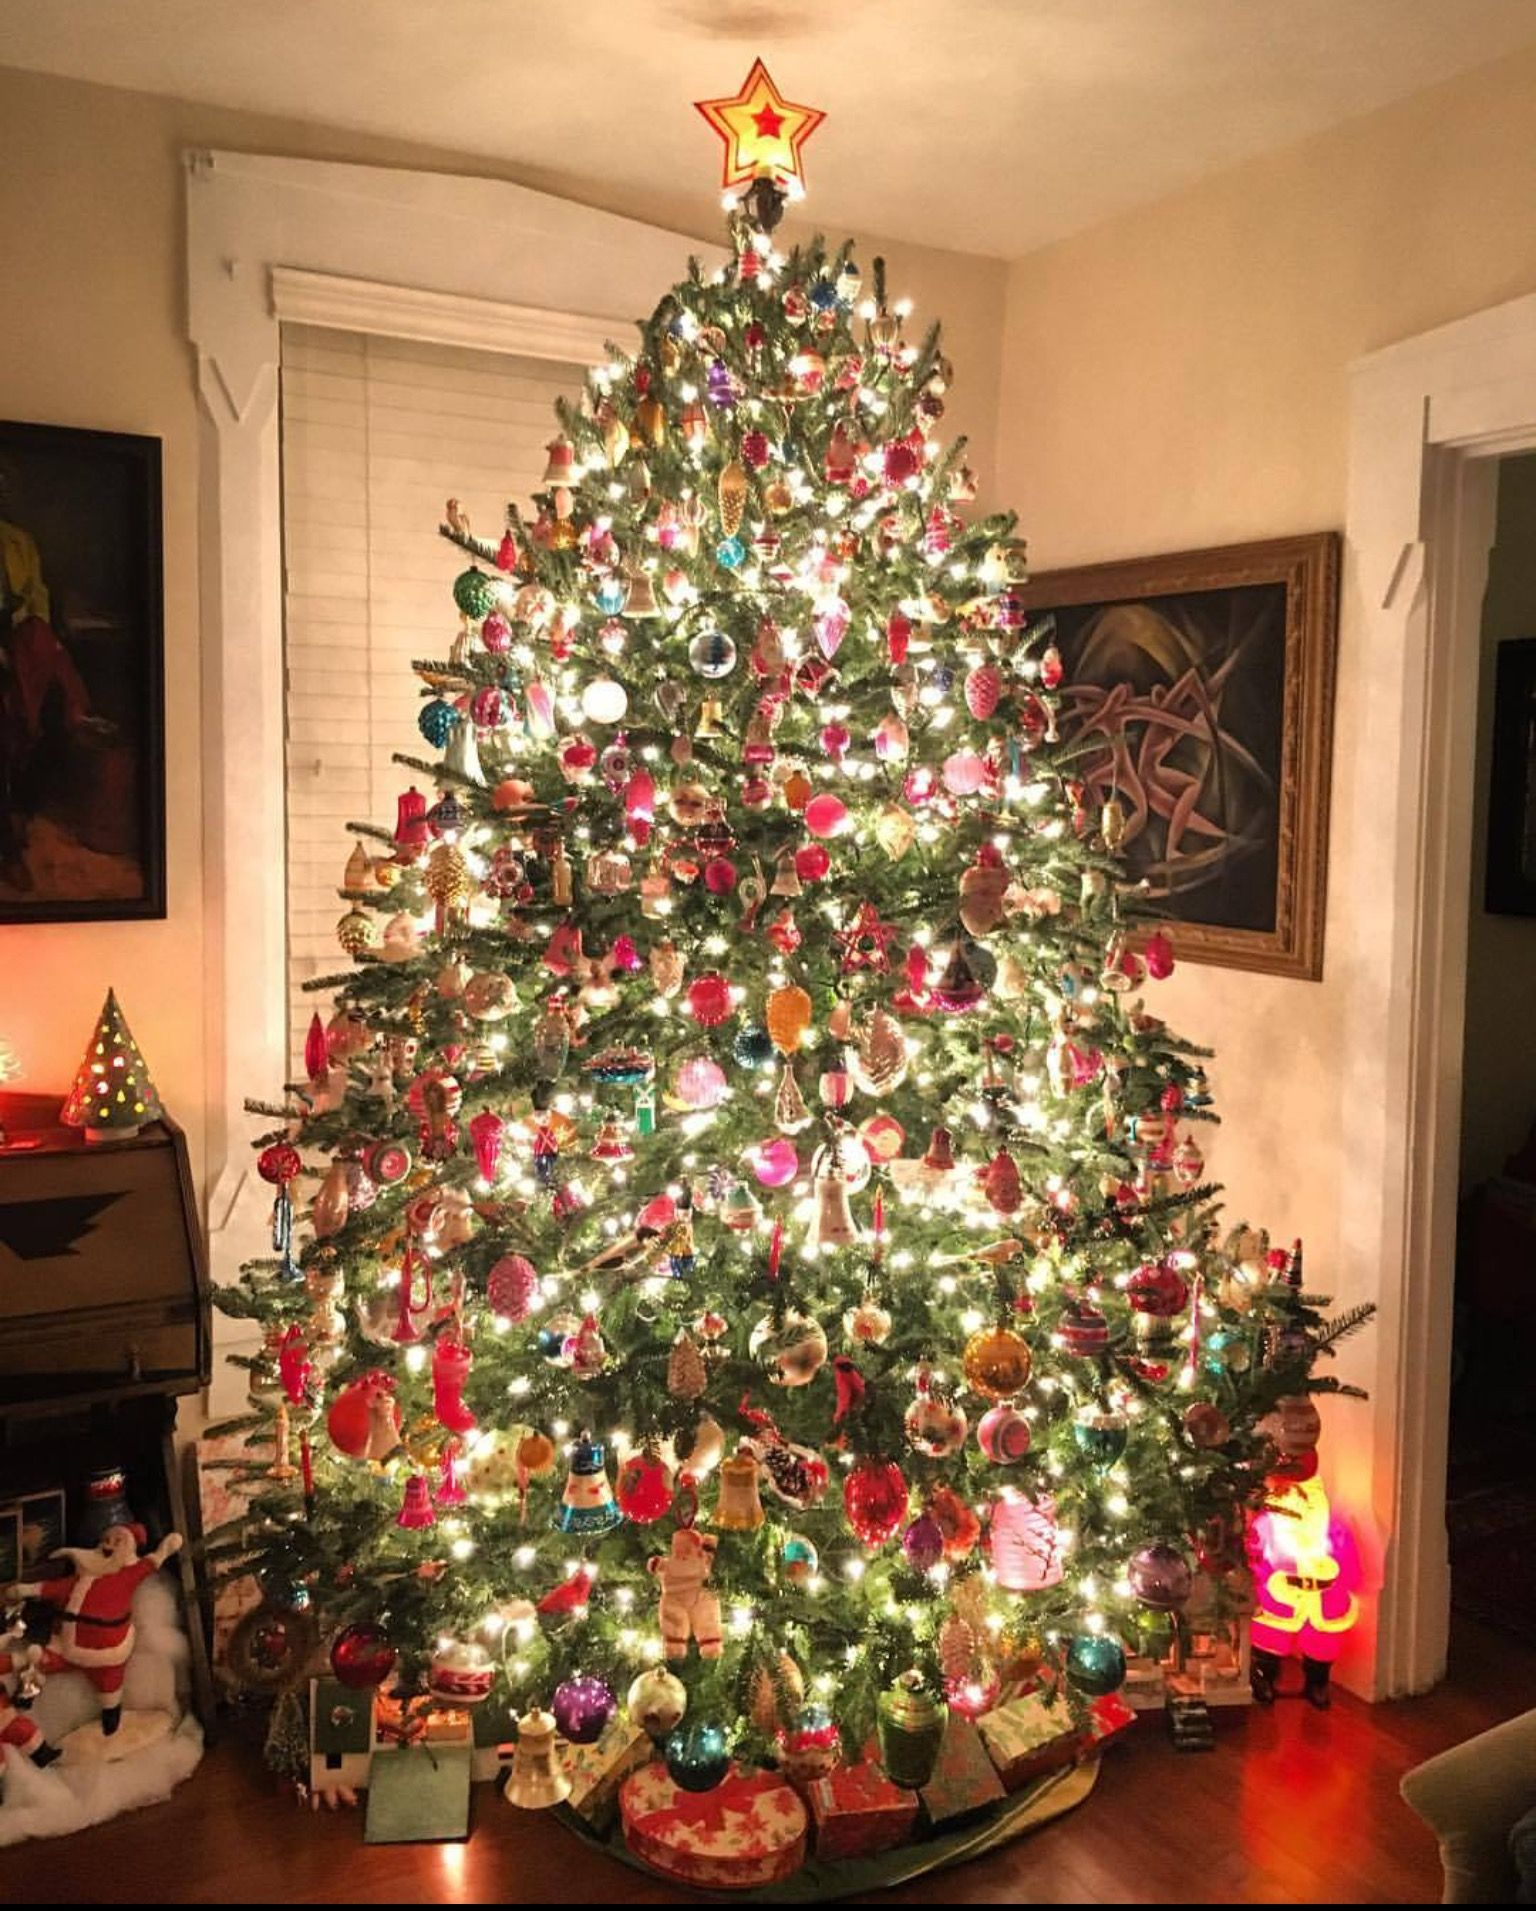 Vintage Christmas Tree: A Very Vintage Christmas Bob Richter's Own Holiday Tree